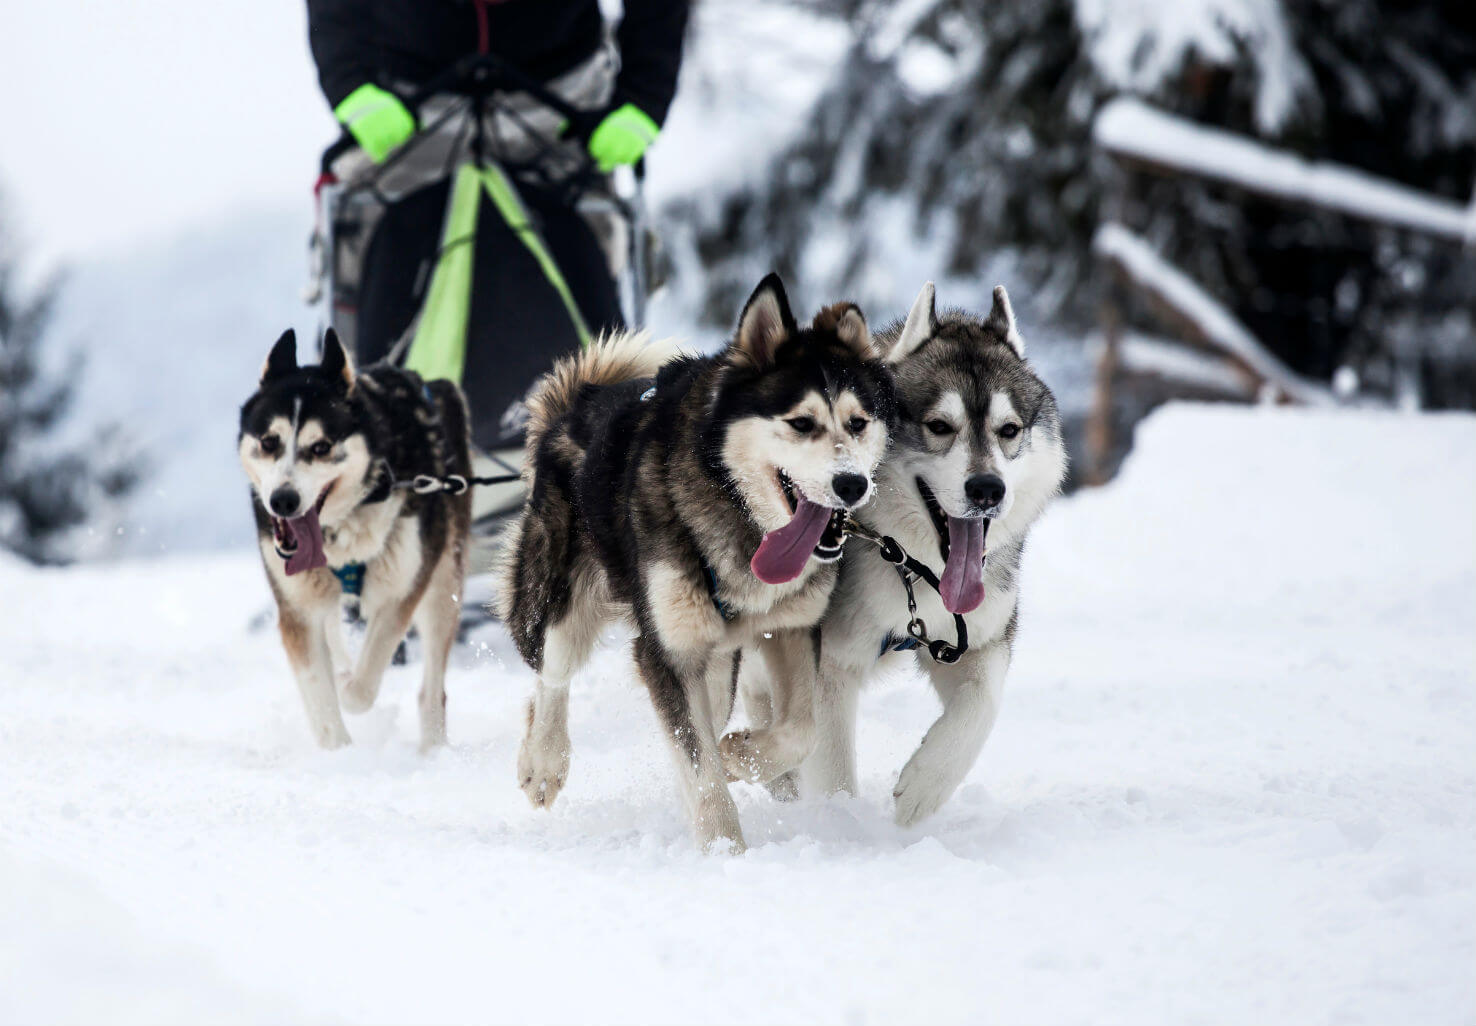 Alaskan huskies pulling a sled through the snow